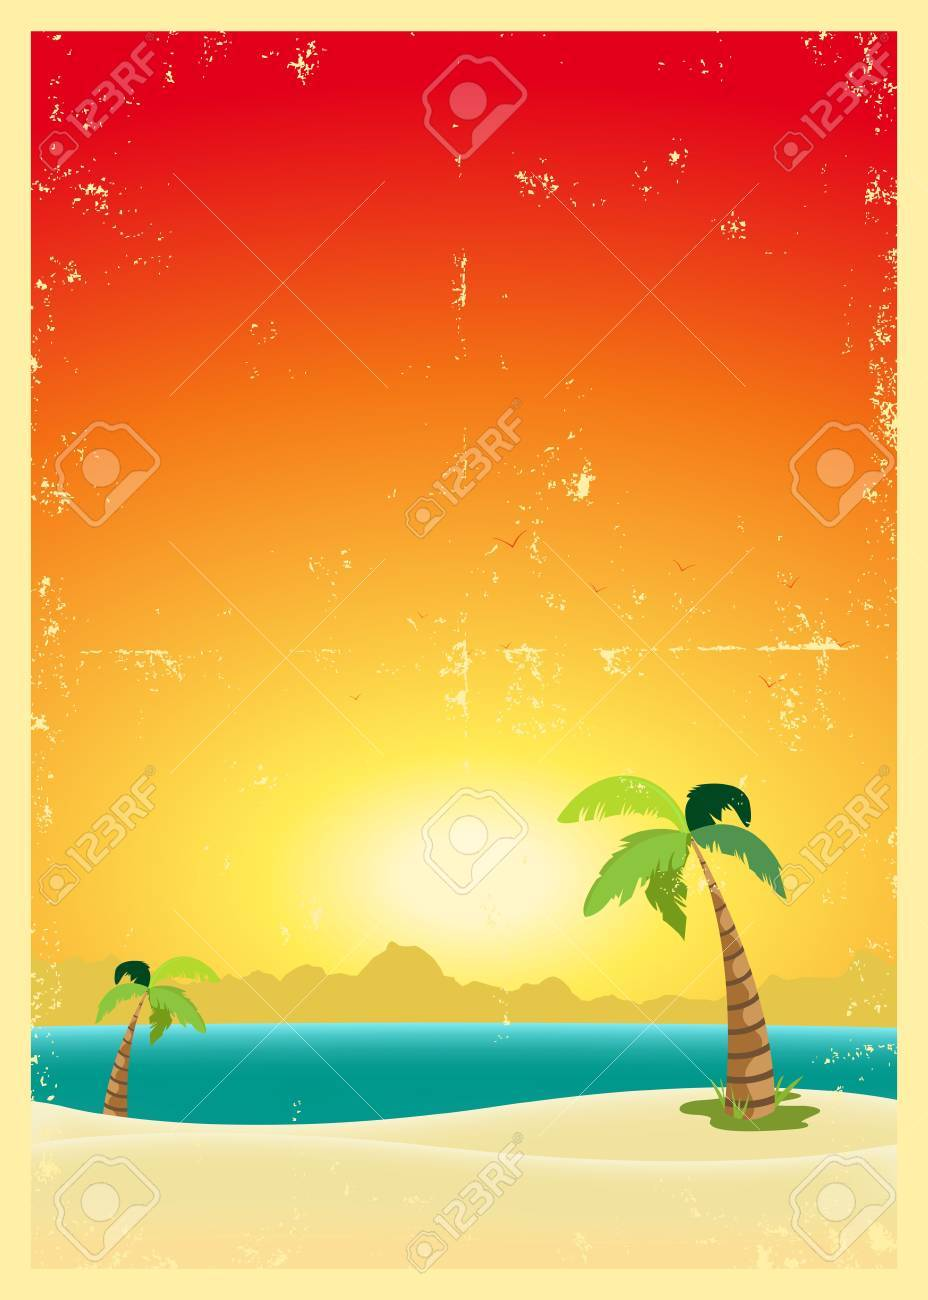 Illustration of an exotic beach with palm trees and a grunge texture Stock Vector - 11248816